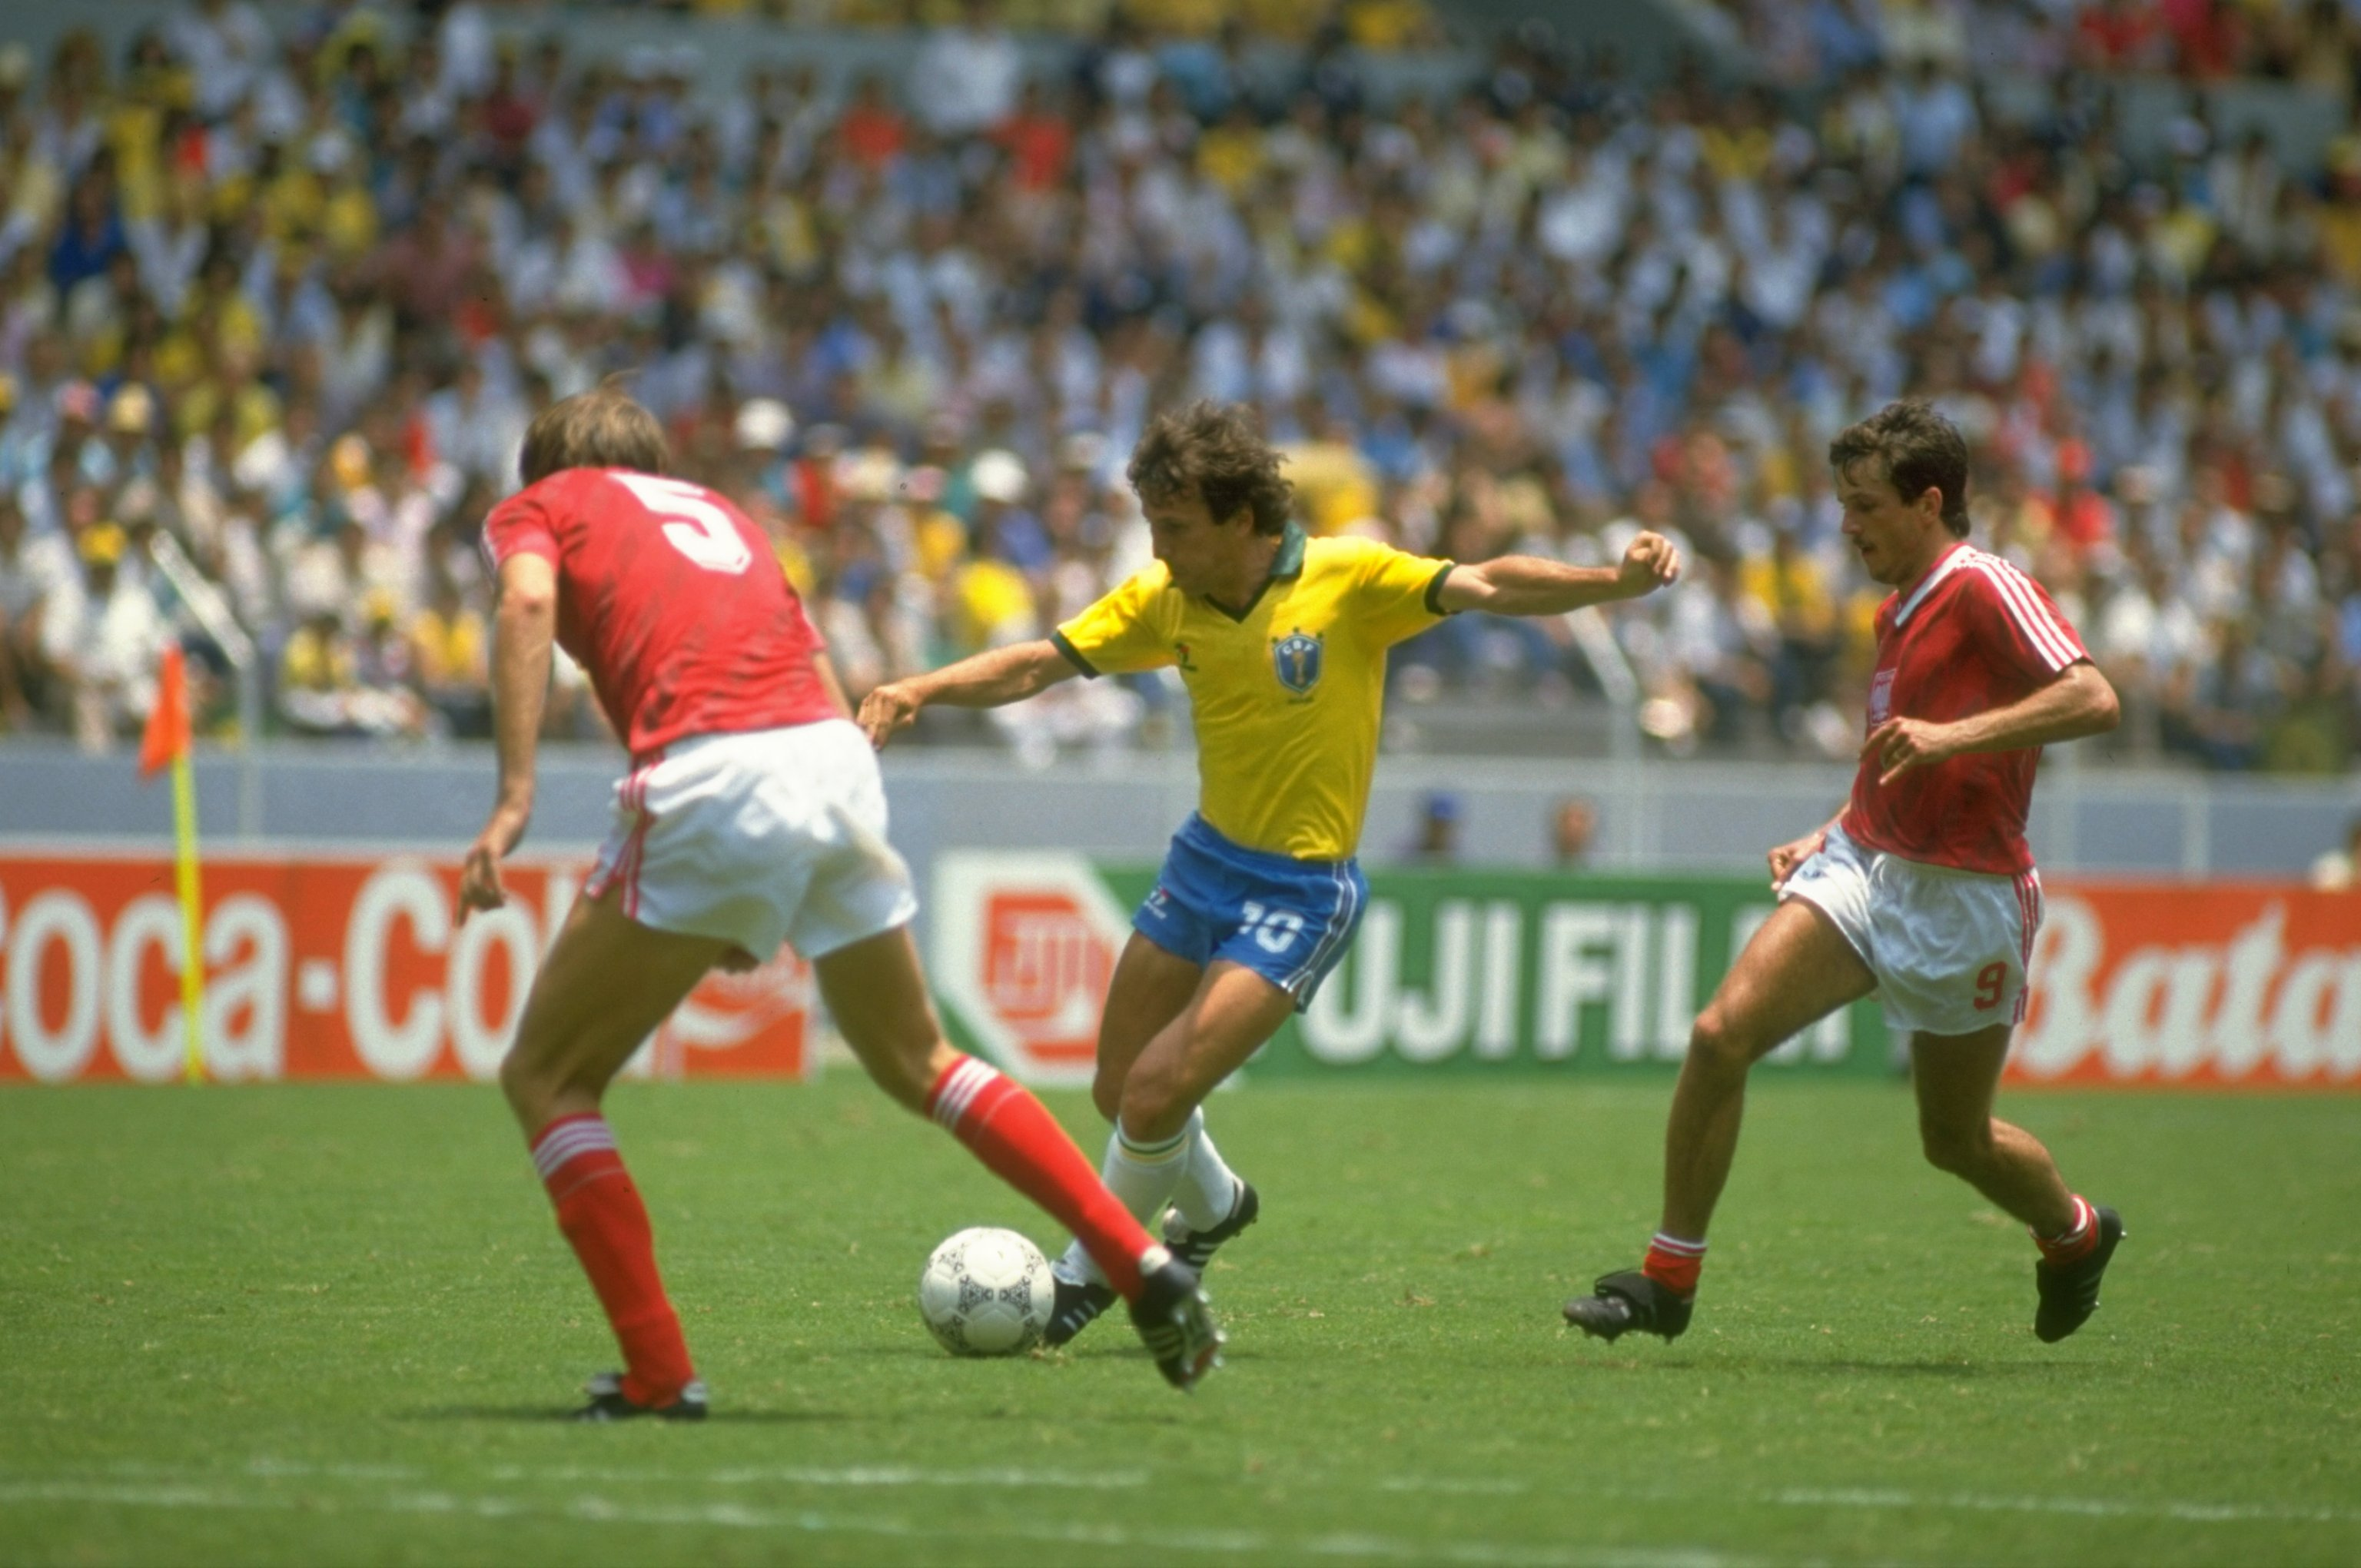 Zico in action for Brazil at the 1982 World Cup